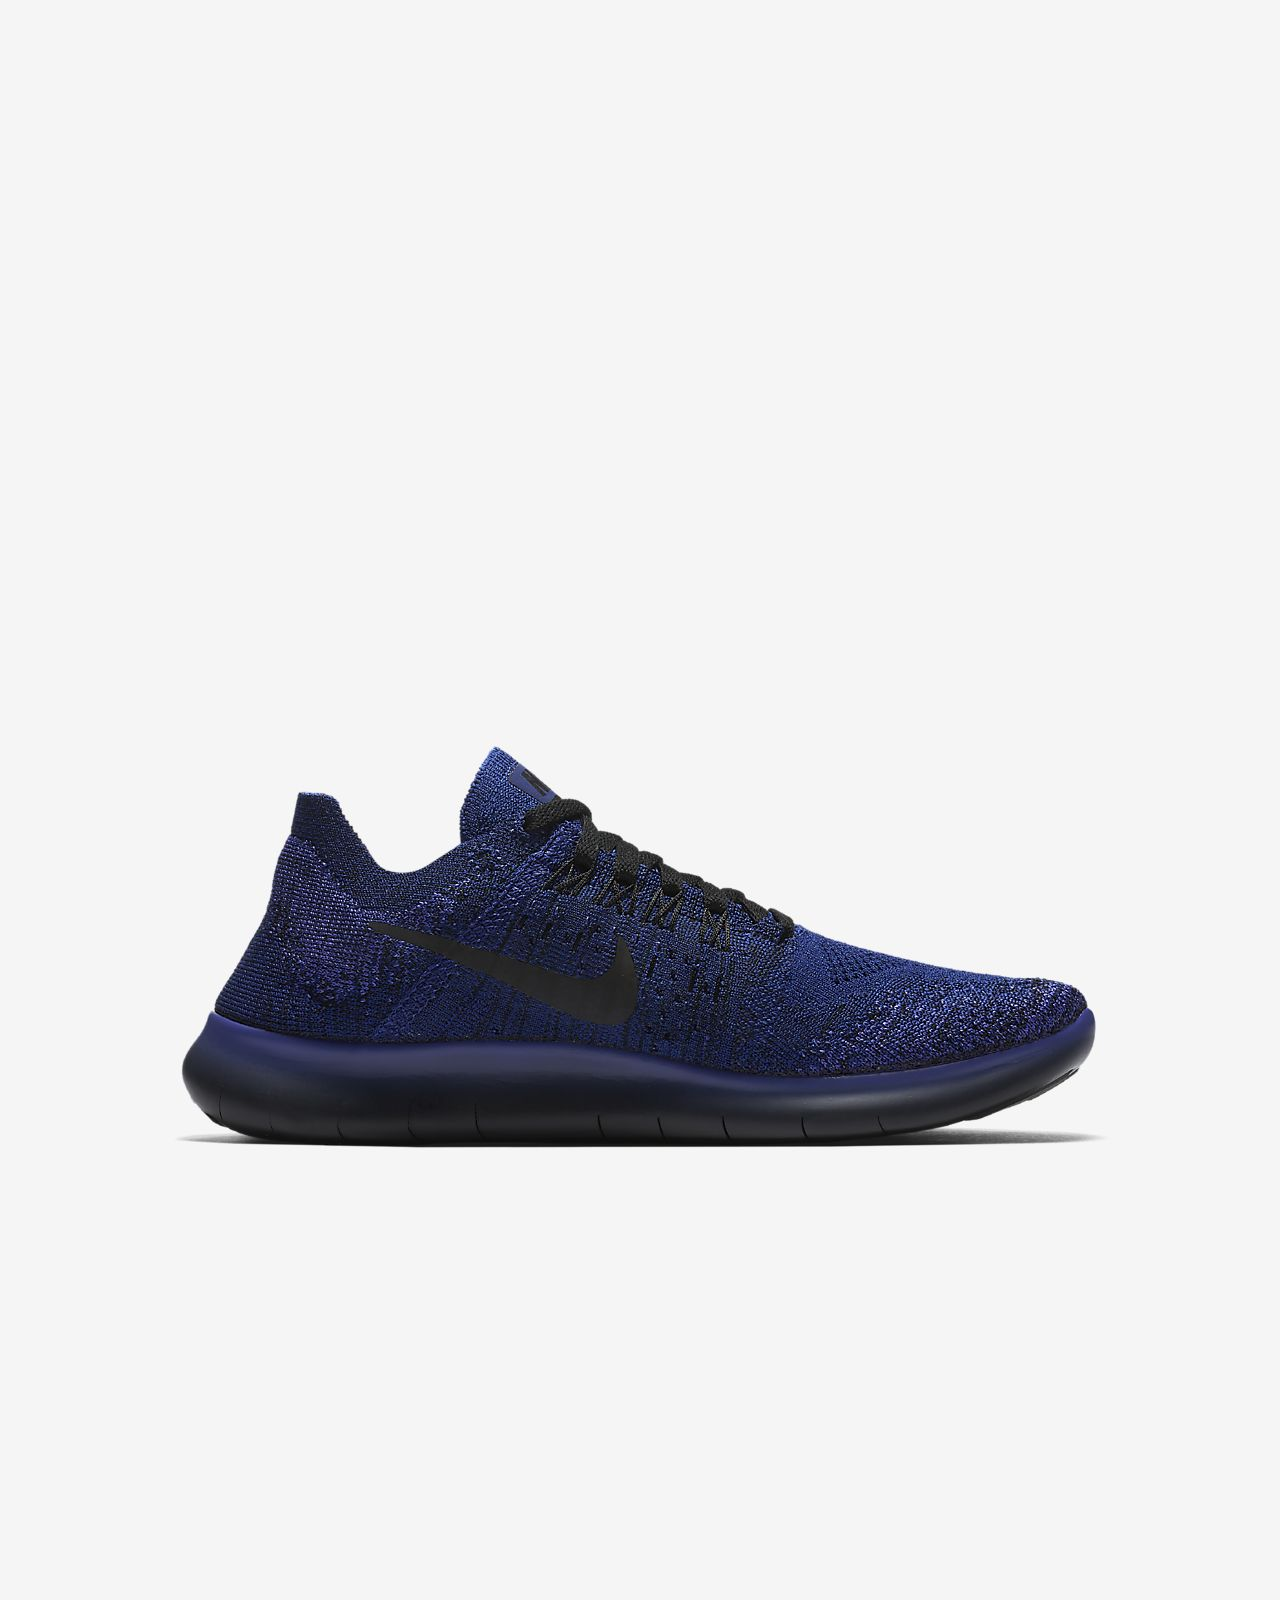 are nike free run flyknit good for running nz